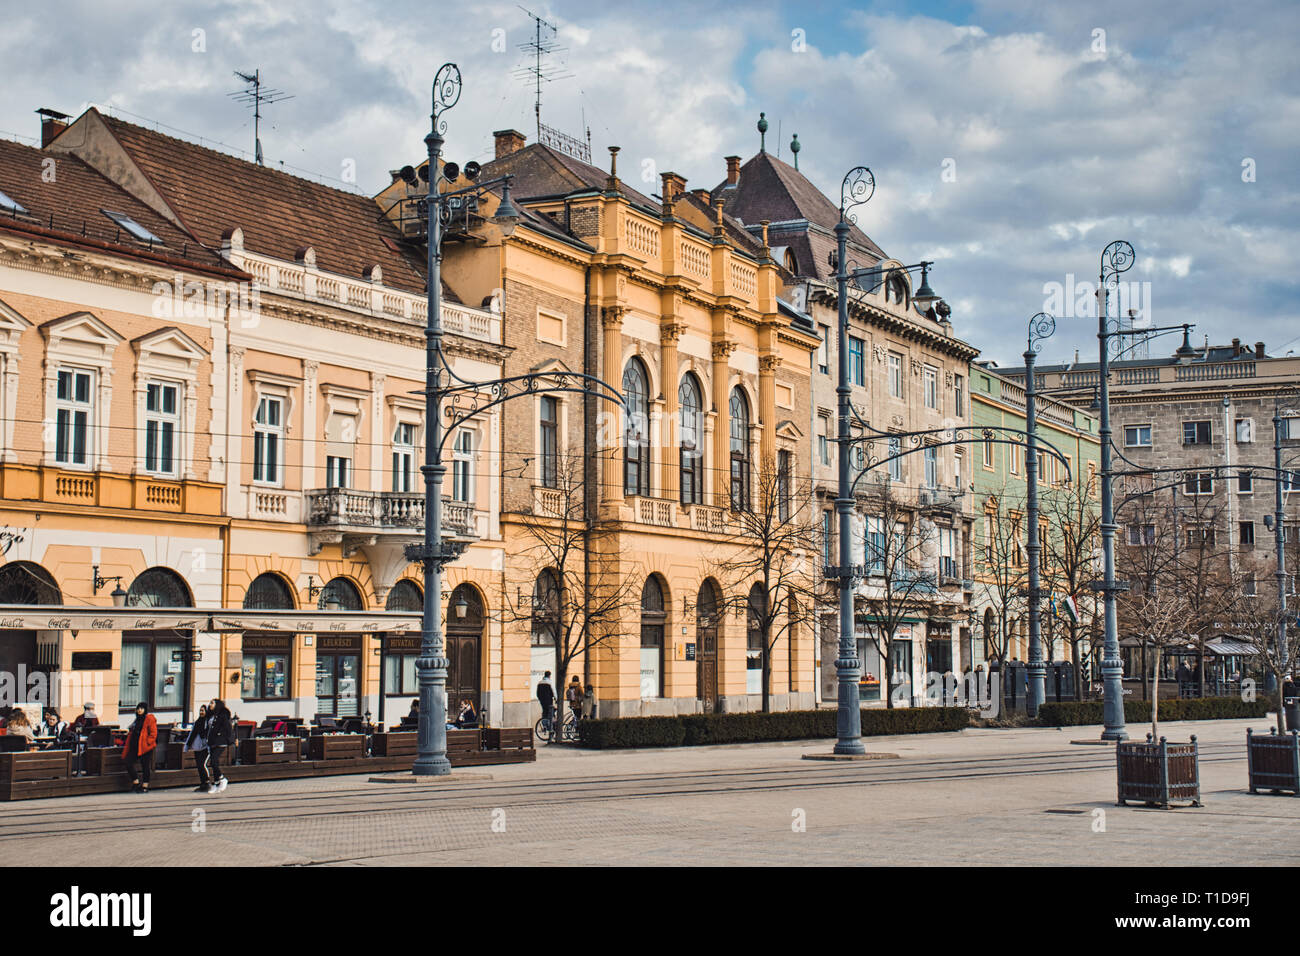 A picture of one side of the main square in Debrecen, Hungary. Including the pastor's office belongin to the Great Church. - Stock Image